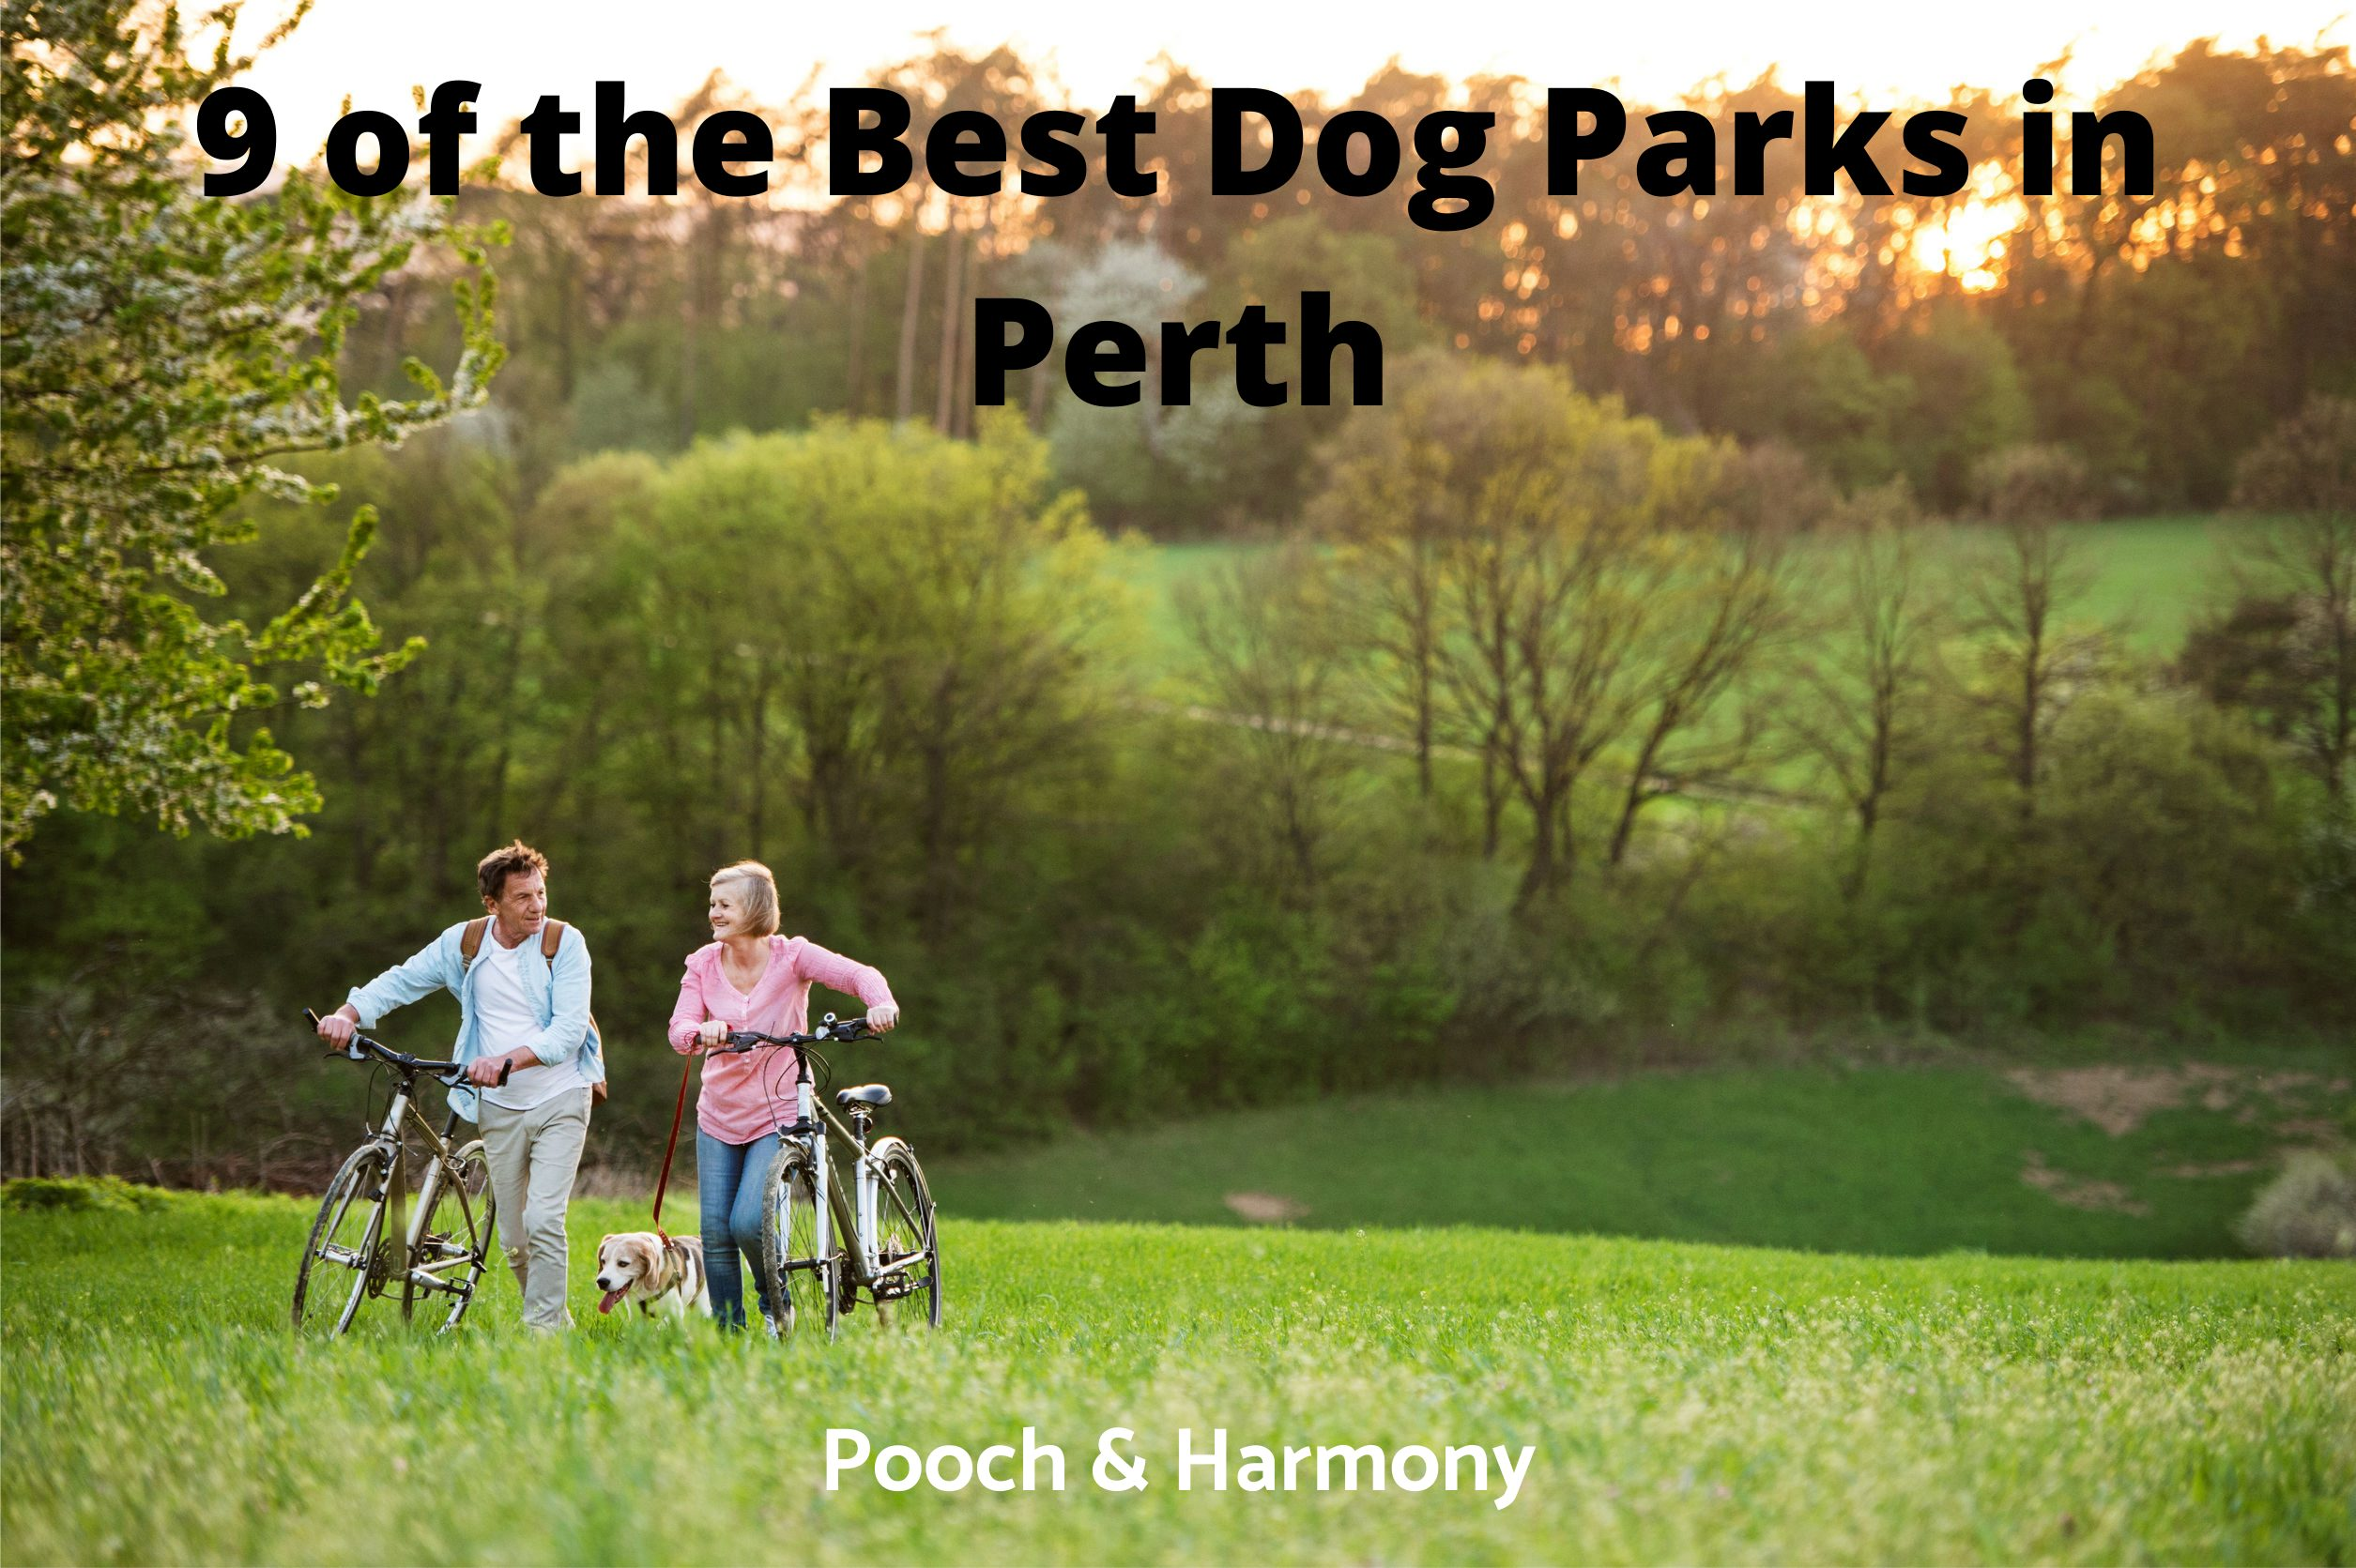 Best Dog Parks in Perth